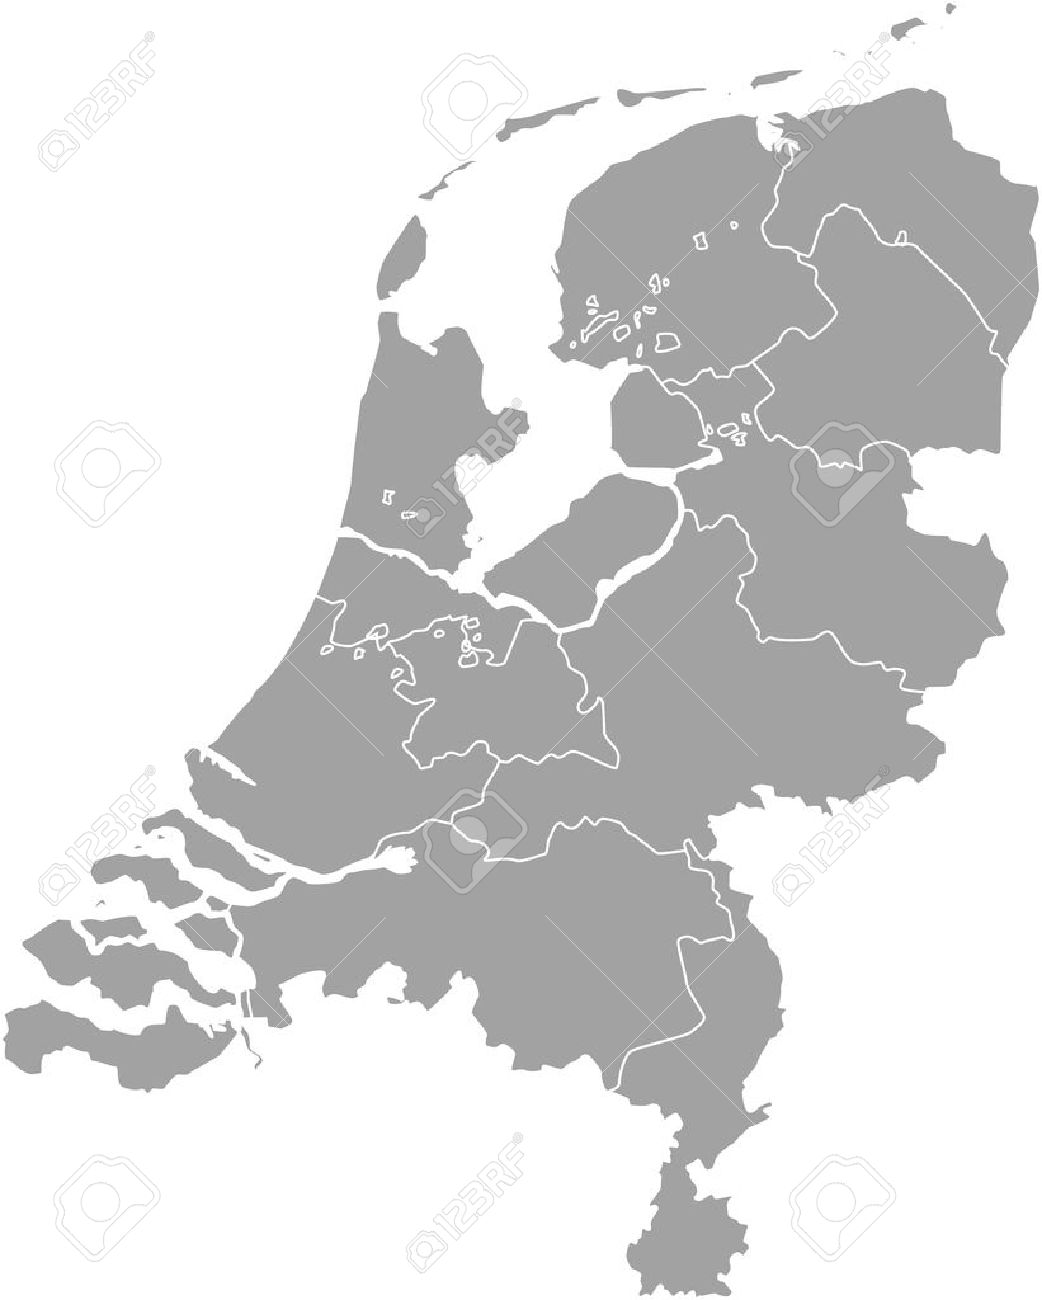 Netherlands Map Outline Vector With Borders Of Provinces Or States     Netherlands map outline vector with borders of provinces or states Stock  Vector   51018511